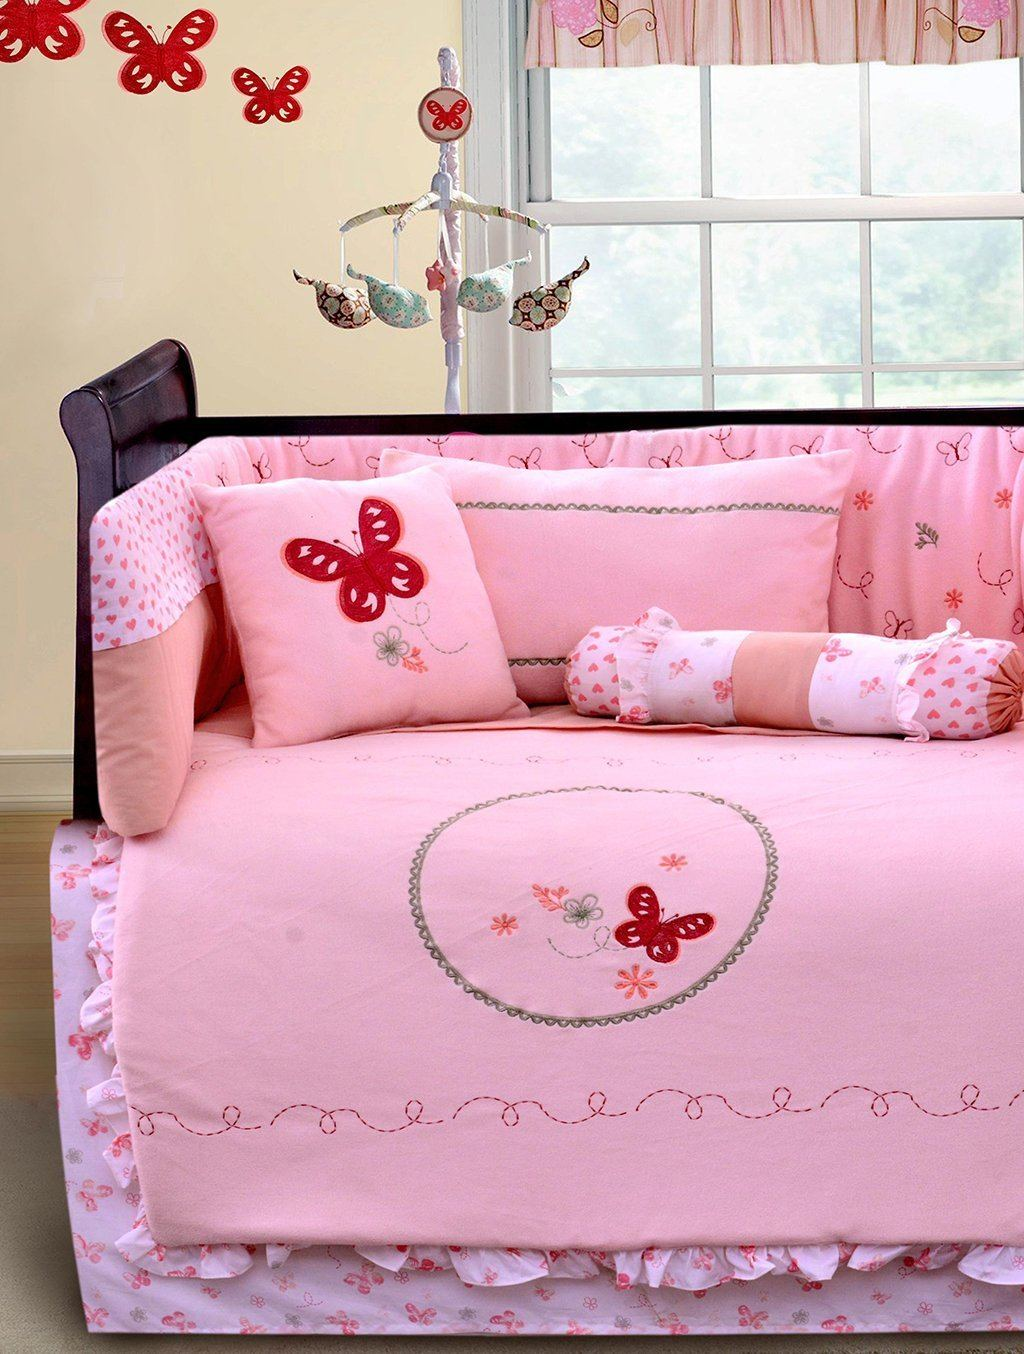 BUTTERFLY MEADOW Cot Sets HOMBEDLIT Baby Cot Sets SINGLE